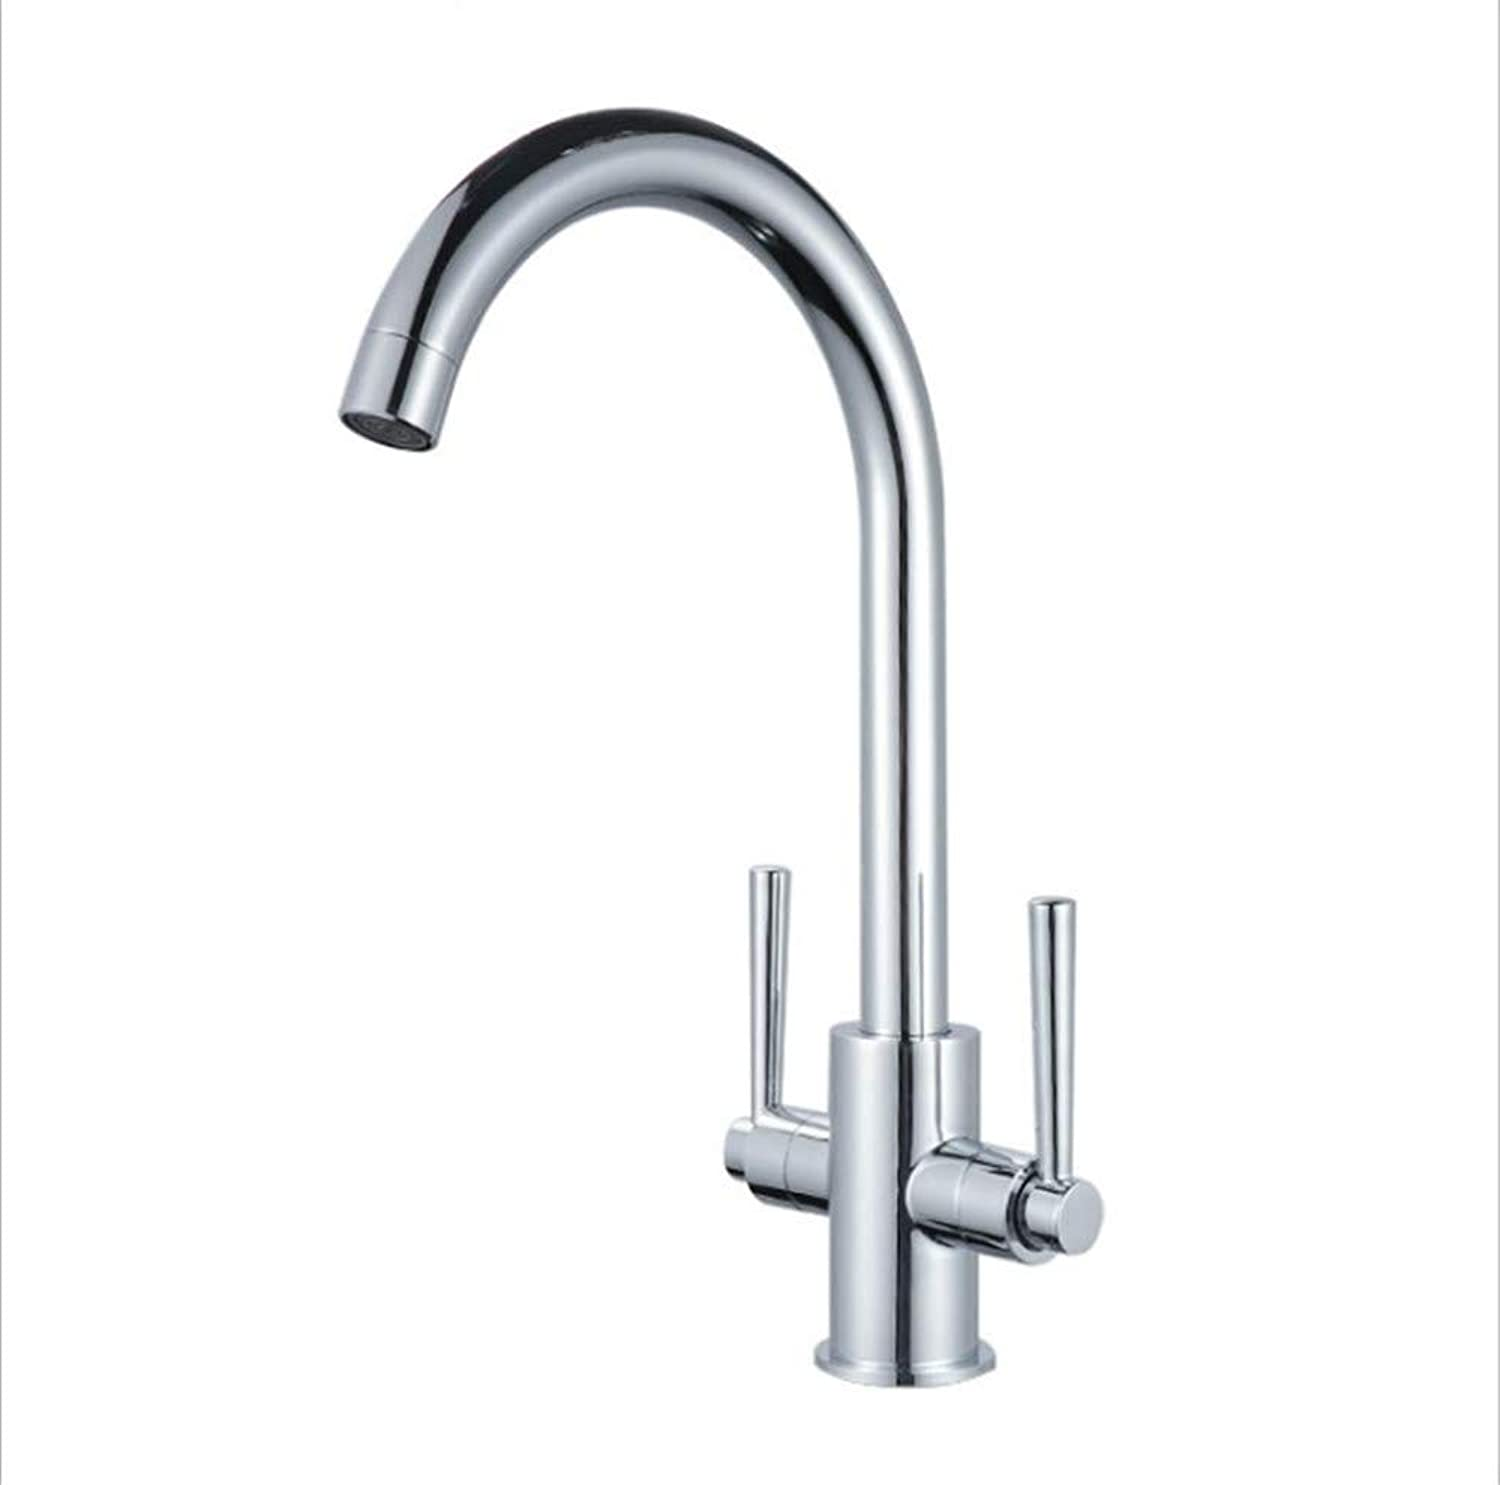 Water Tapdrinking Designer Archcool and Hot Mixing Faucets for Kitchen Faucets and Vegetable Basins